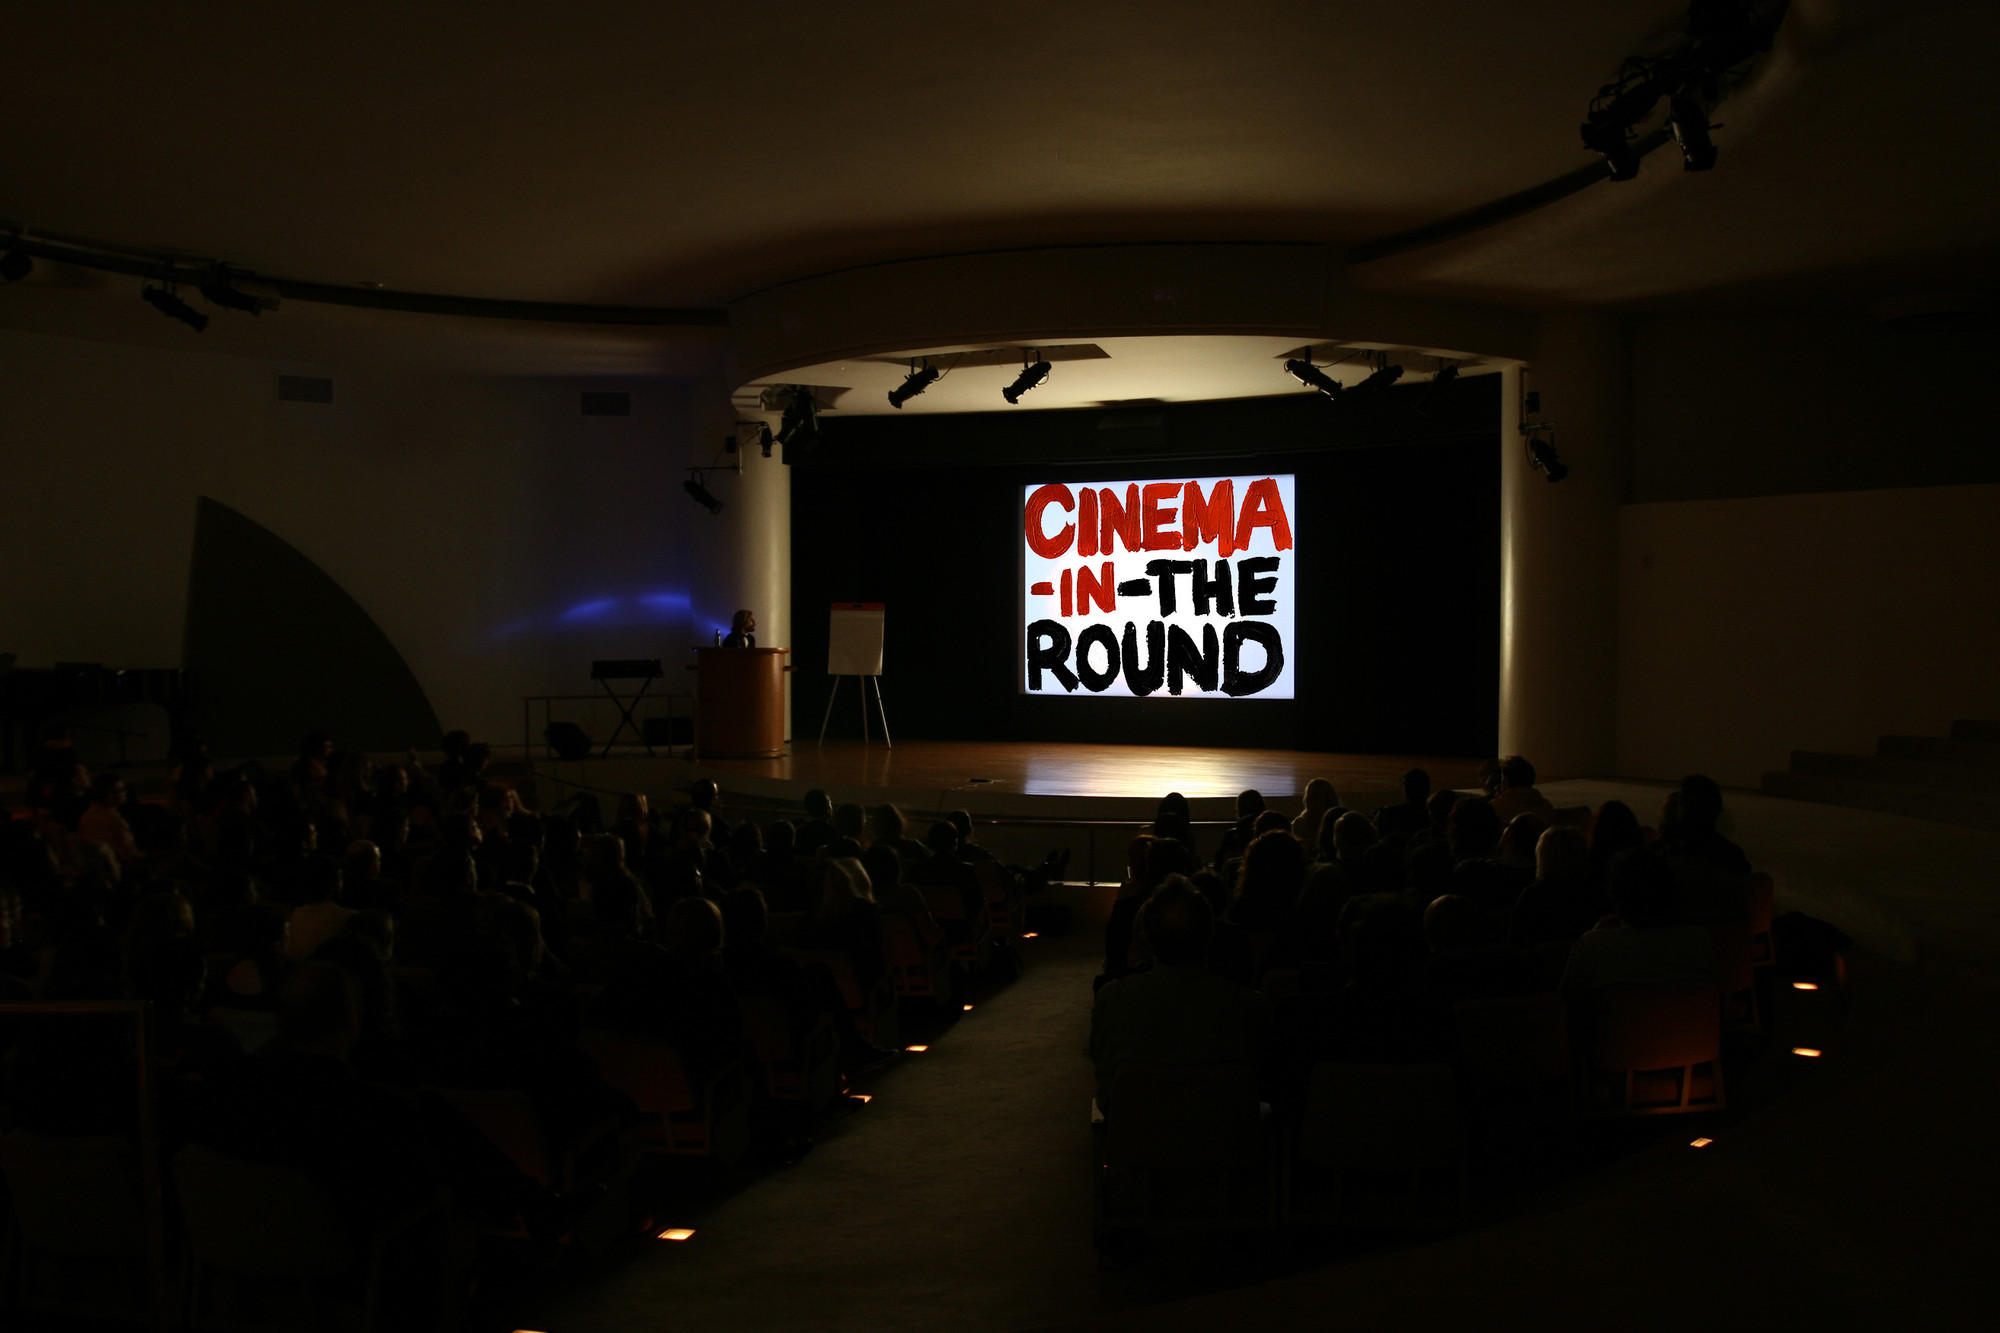 Mark Leckey. Cinema-in-the-Round. 2006-2008